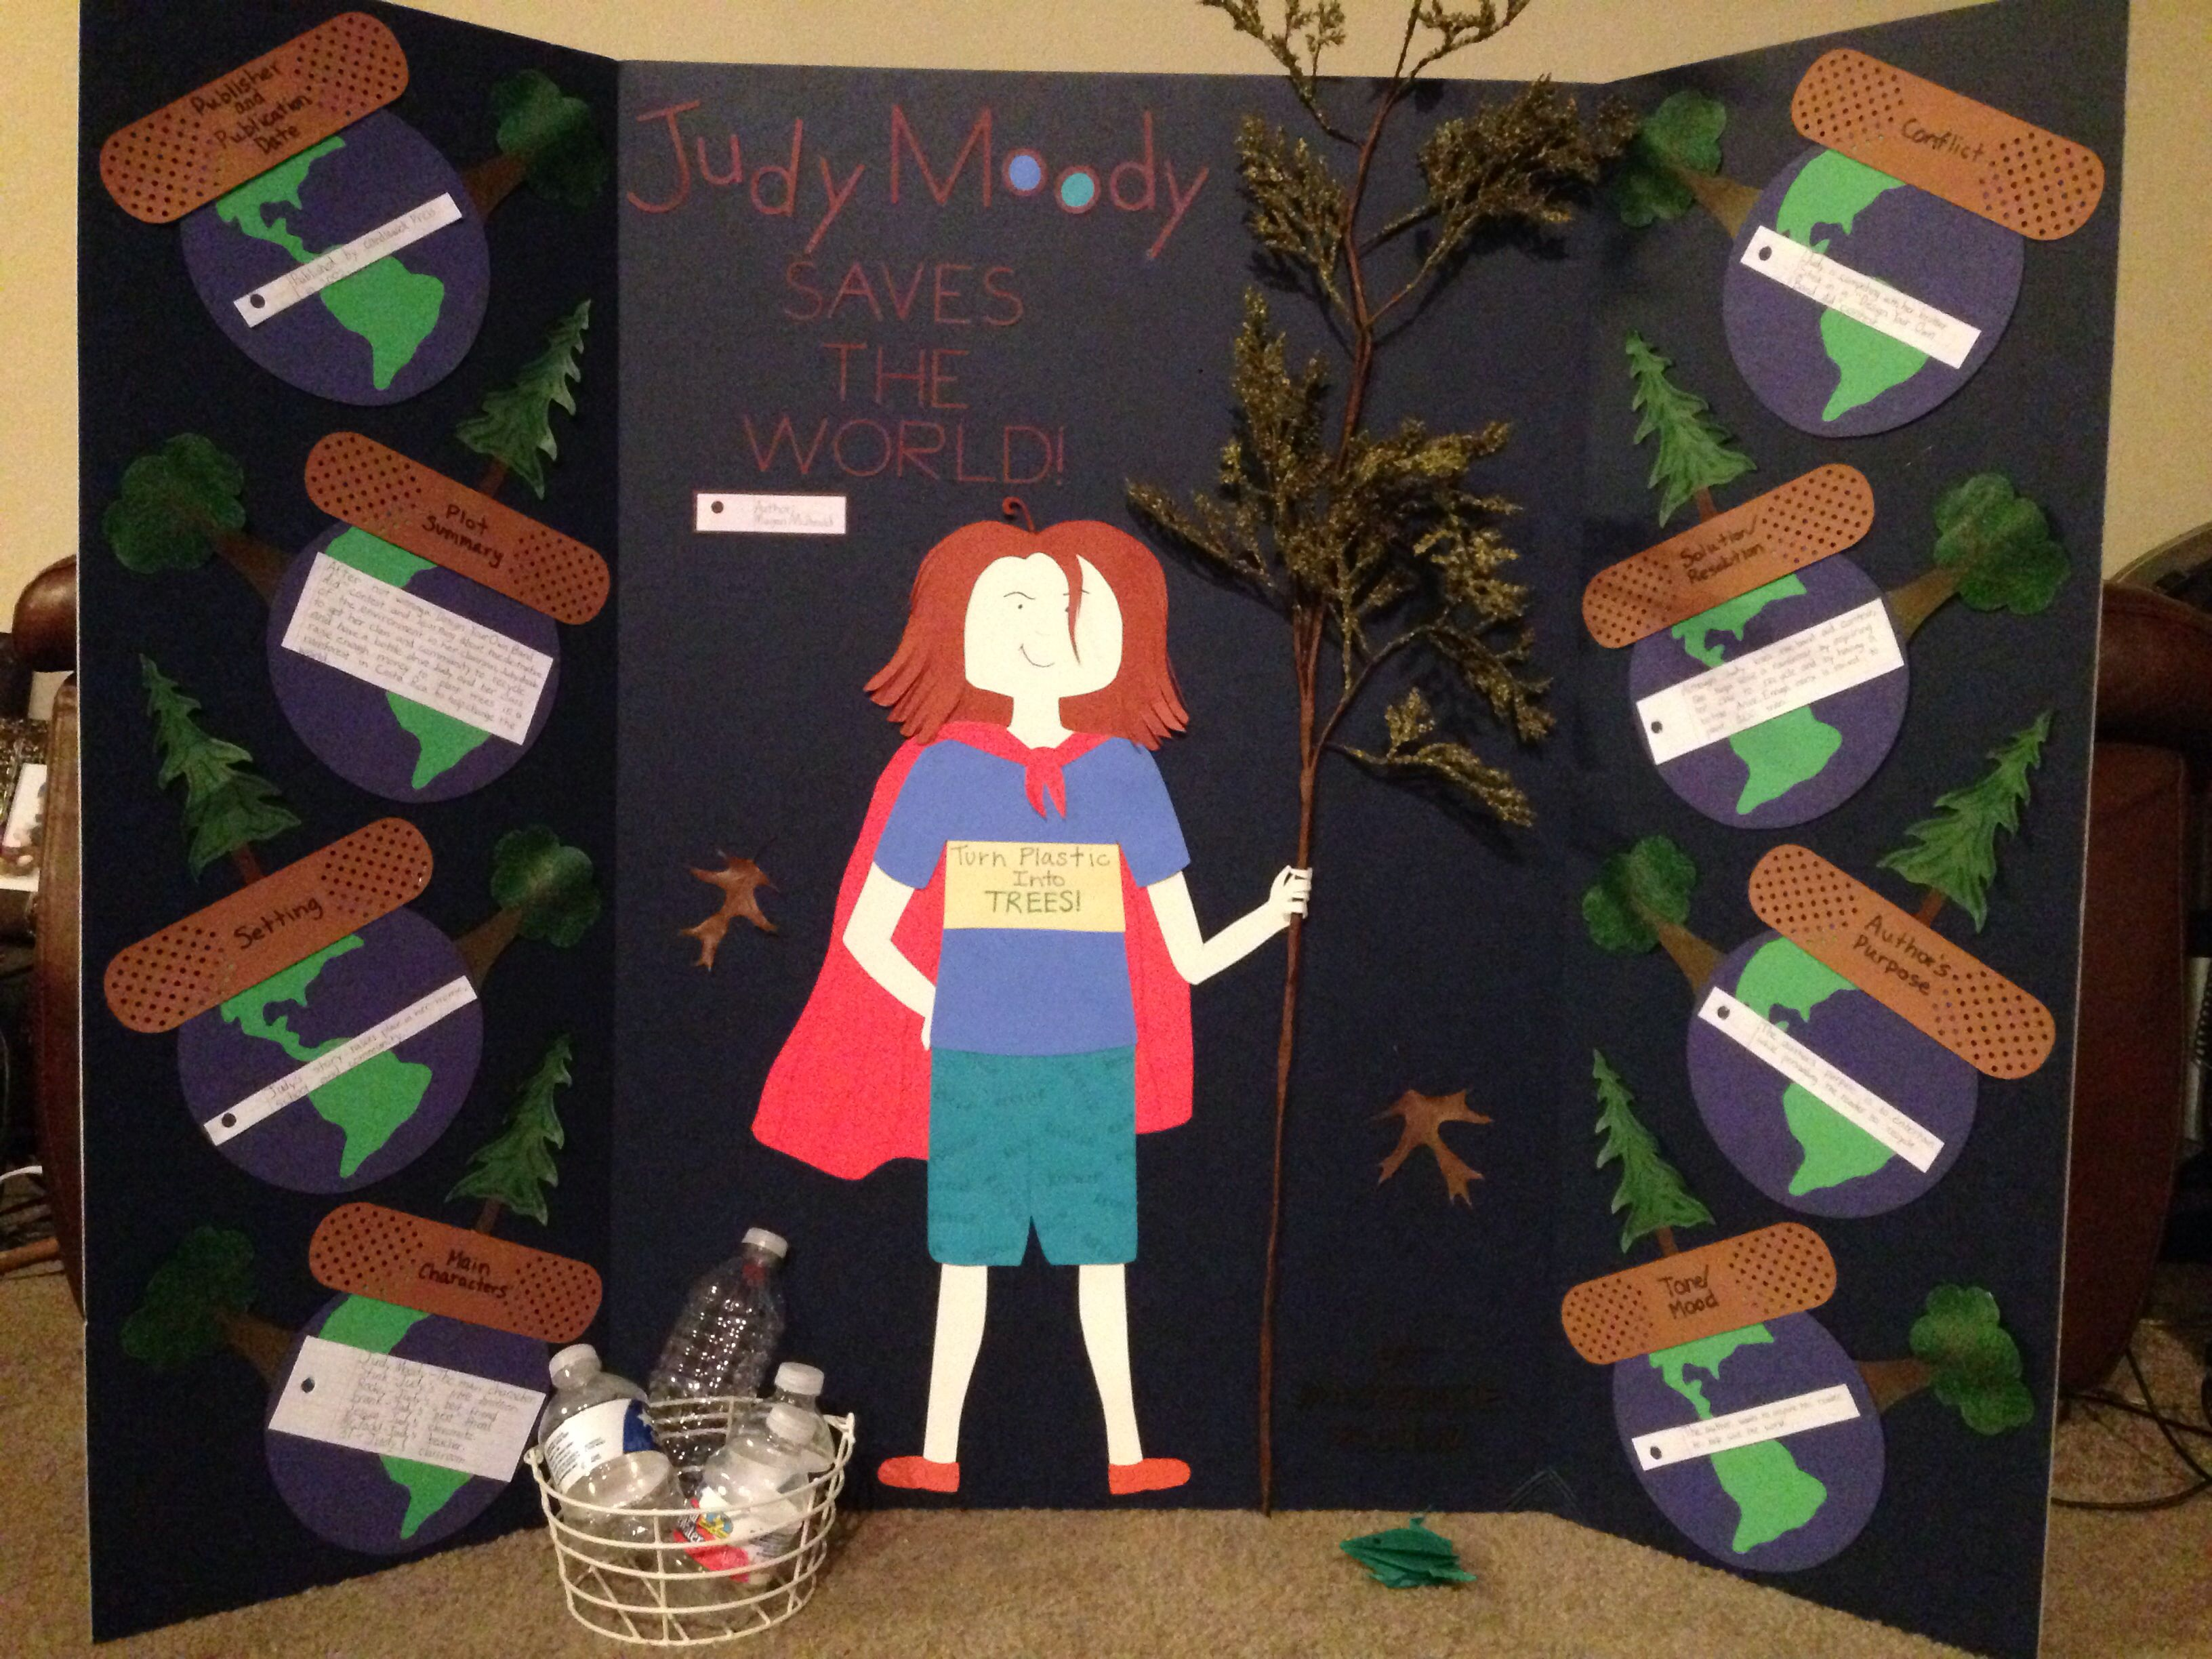 judy moody saves the world tri fold book report project